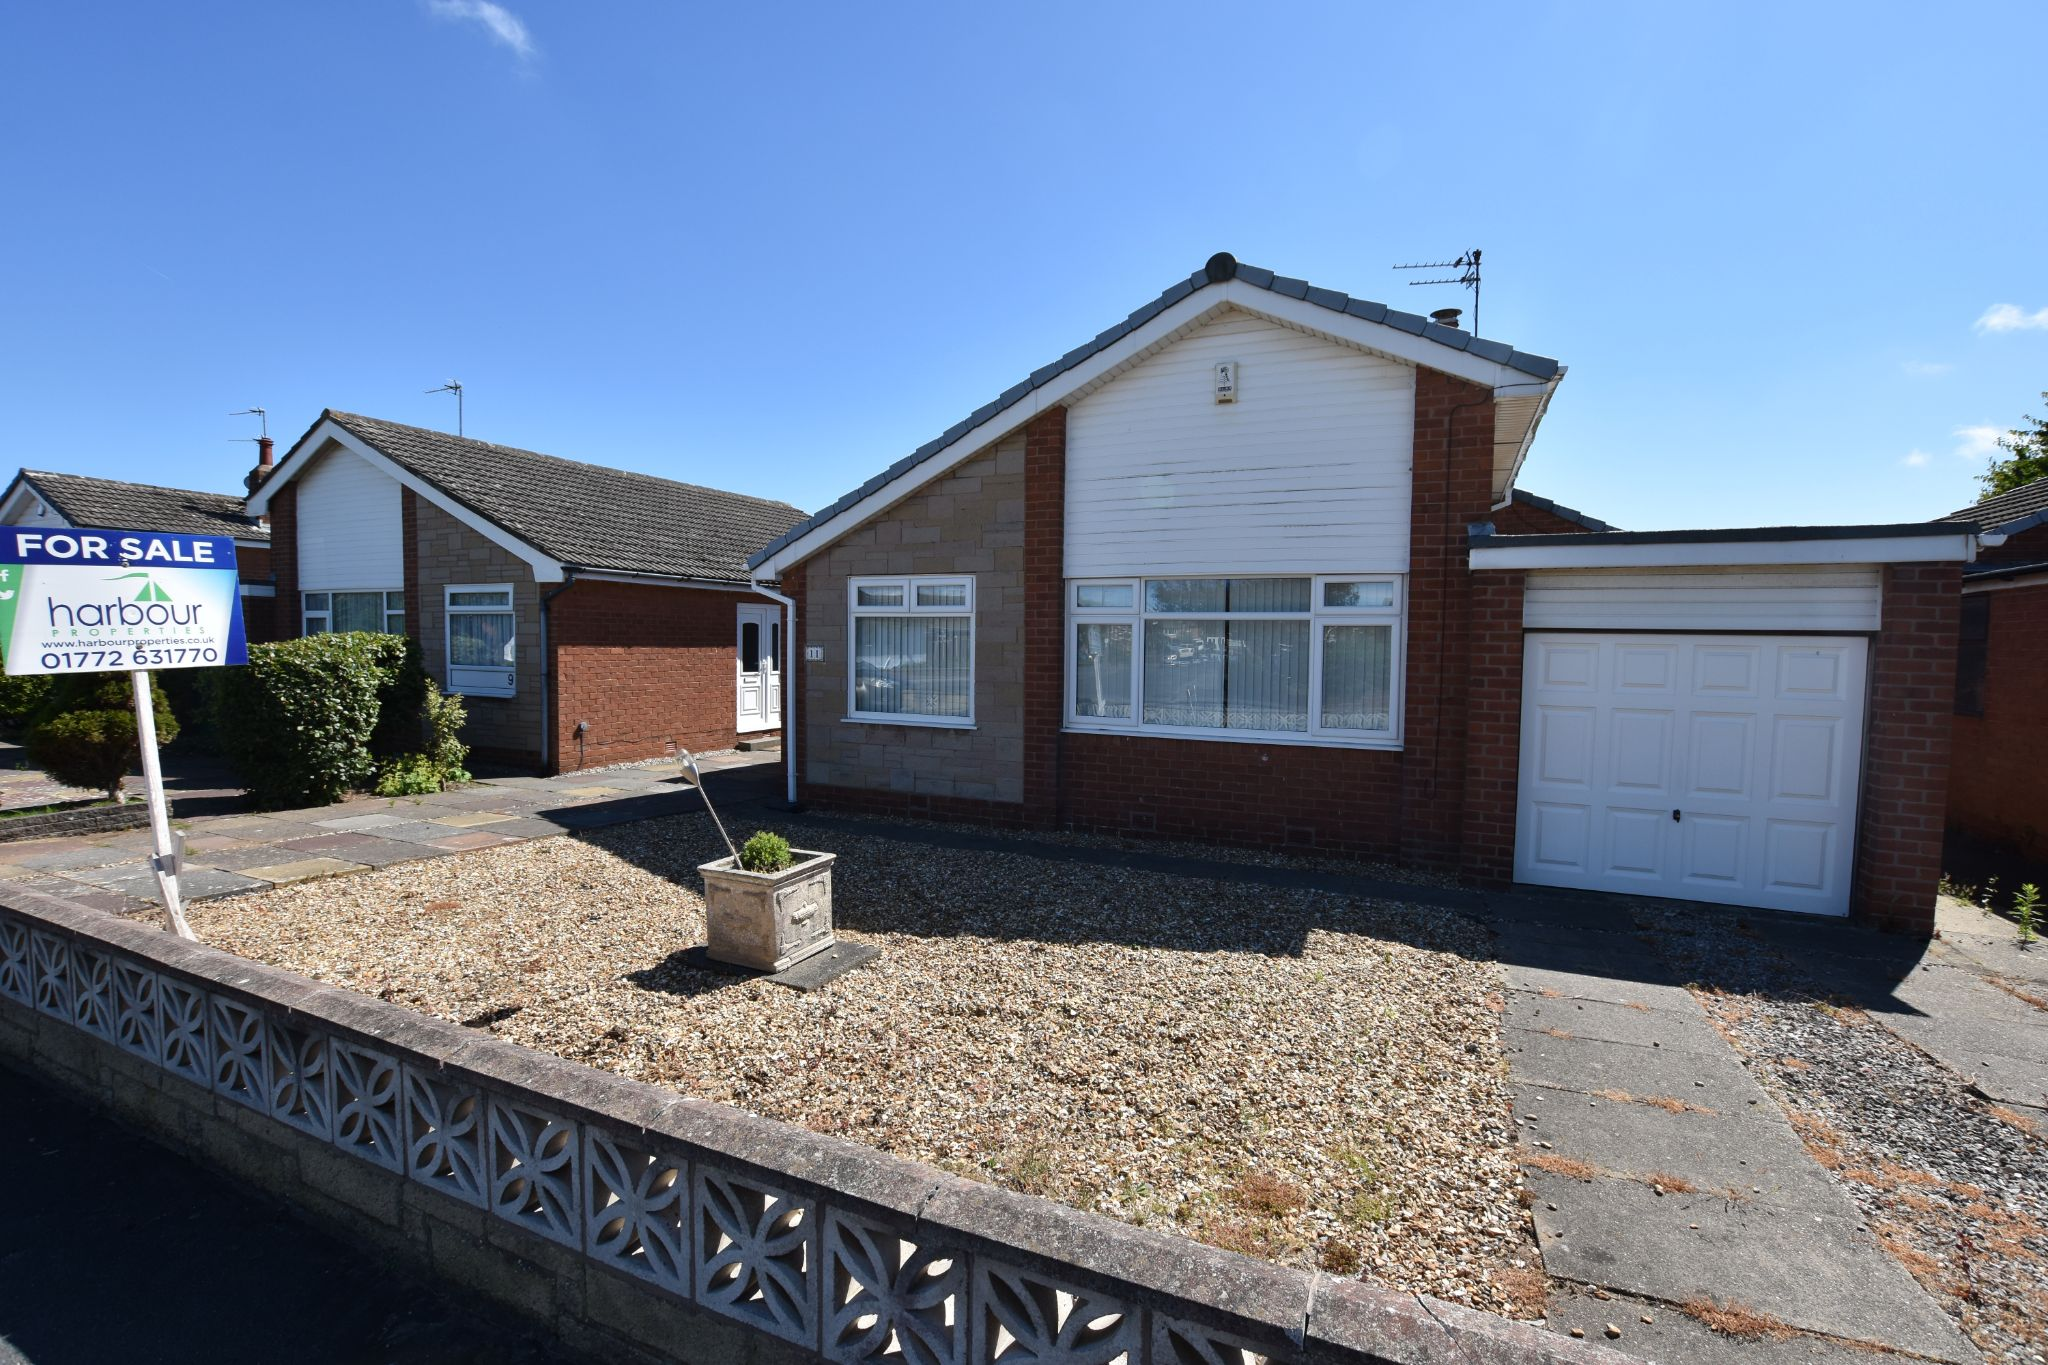 2 bedroom detached bungalow For Sale in Lytham St Annes - Otley Road